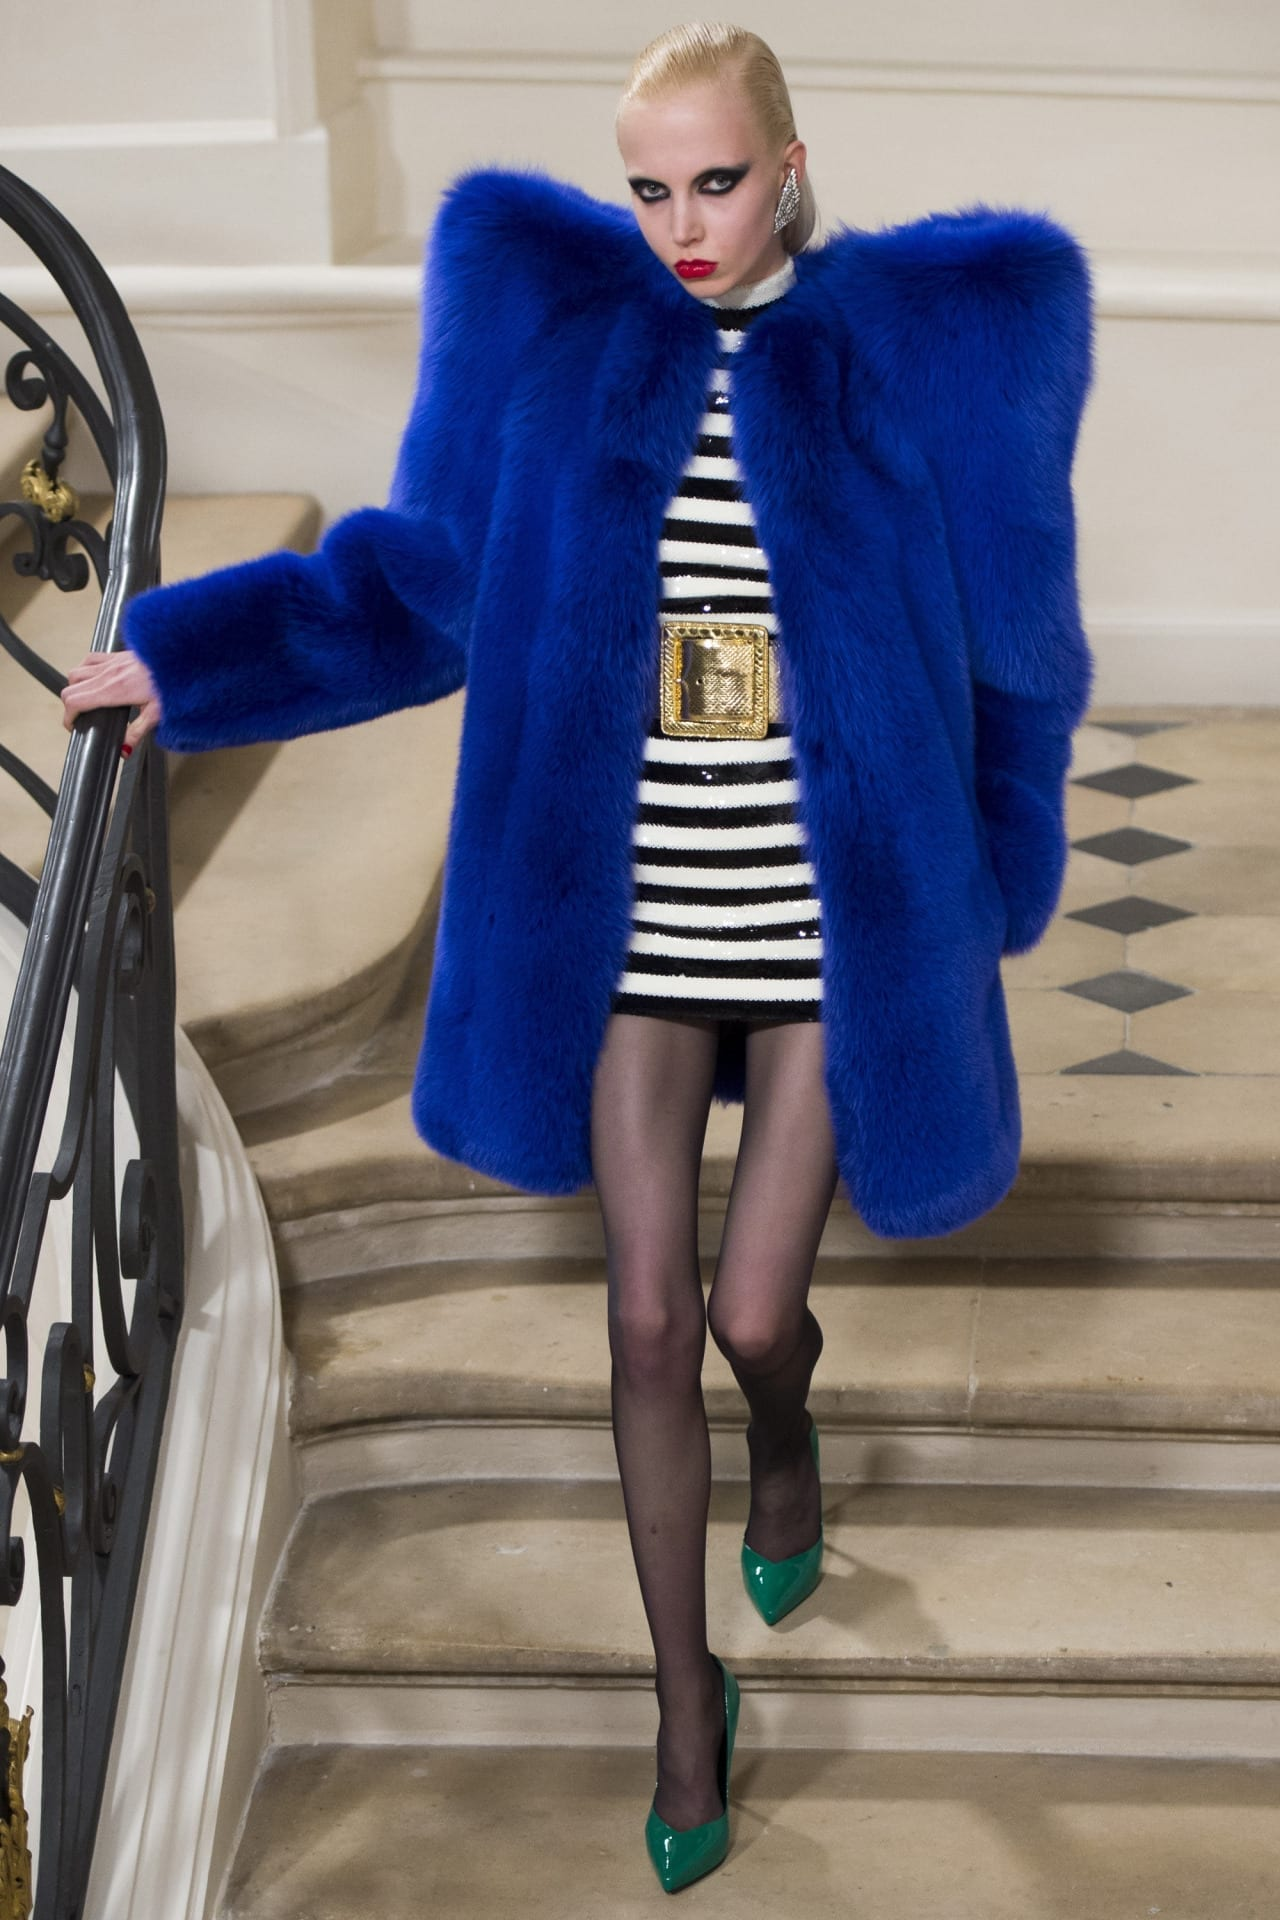 Saint Laurent inverno 2016-17, theladycracy.it, elisa bellino, fashion blogger italiane, fashion bloggers, fashion blog, fashion blogger italiane, elisa bellino, tendenze moda autunno inverno 2016, anni 80 moda,